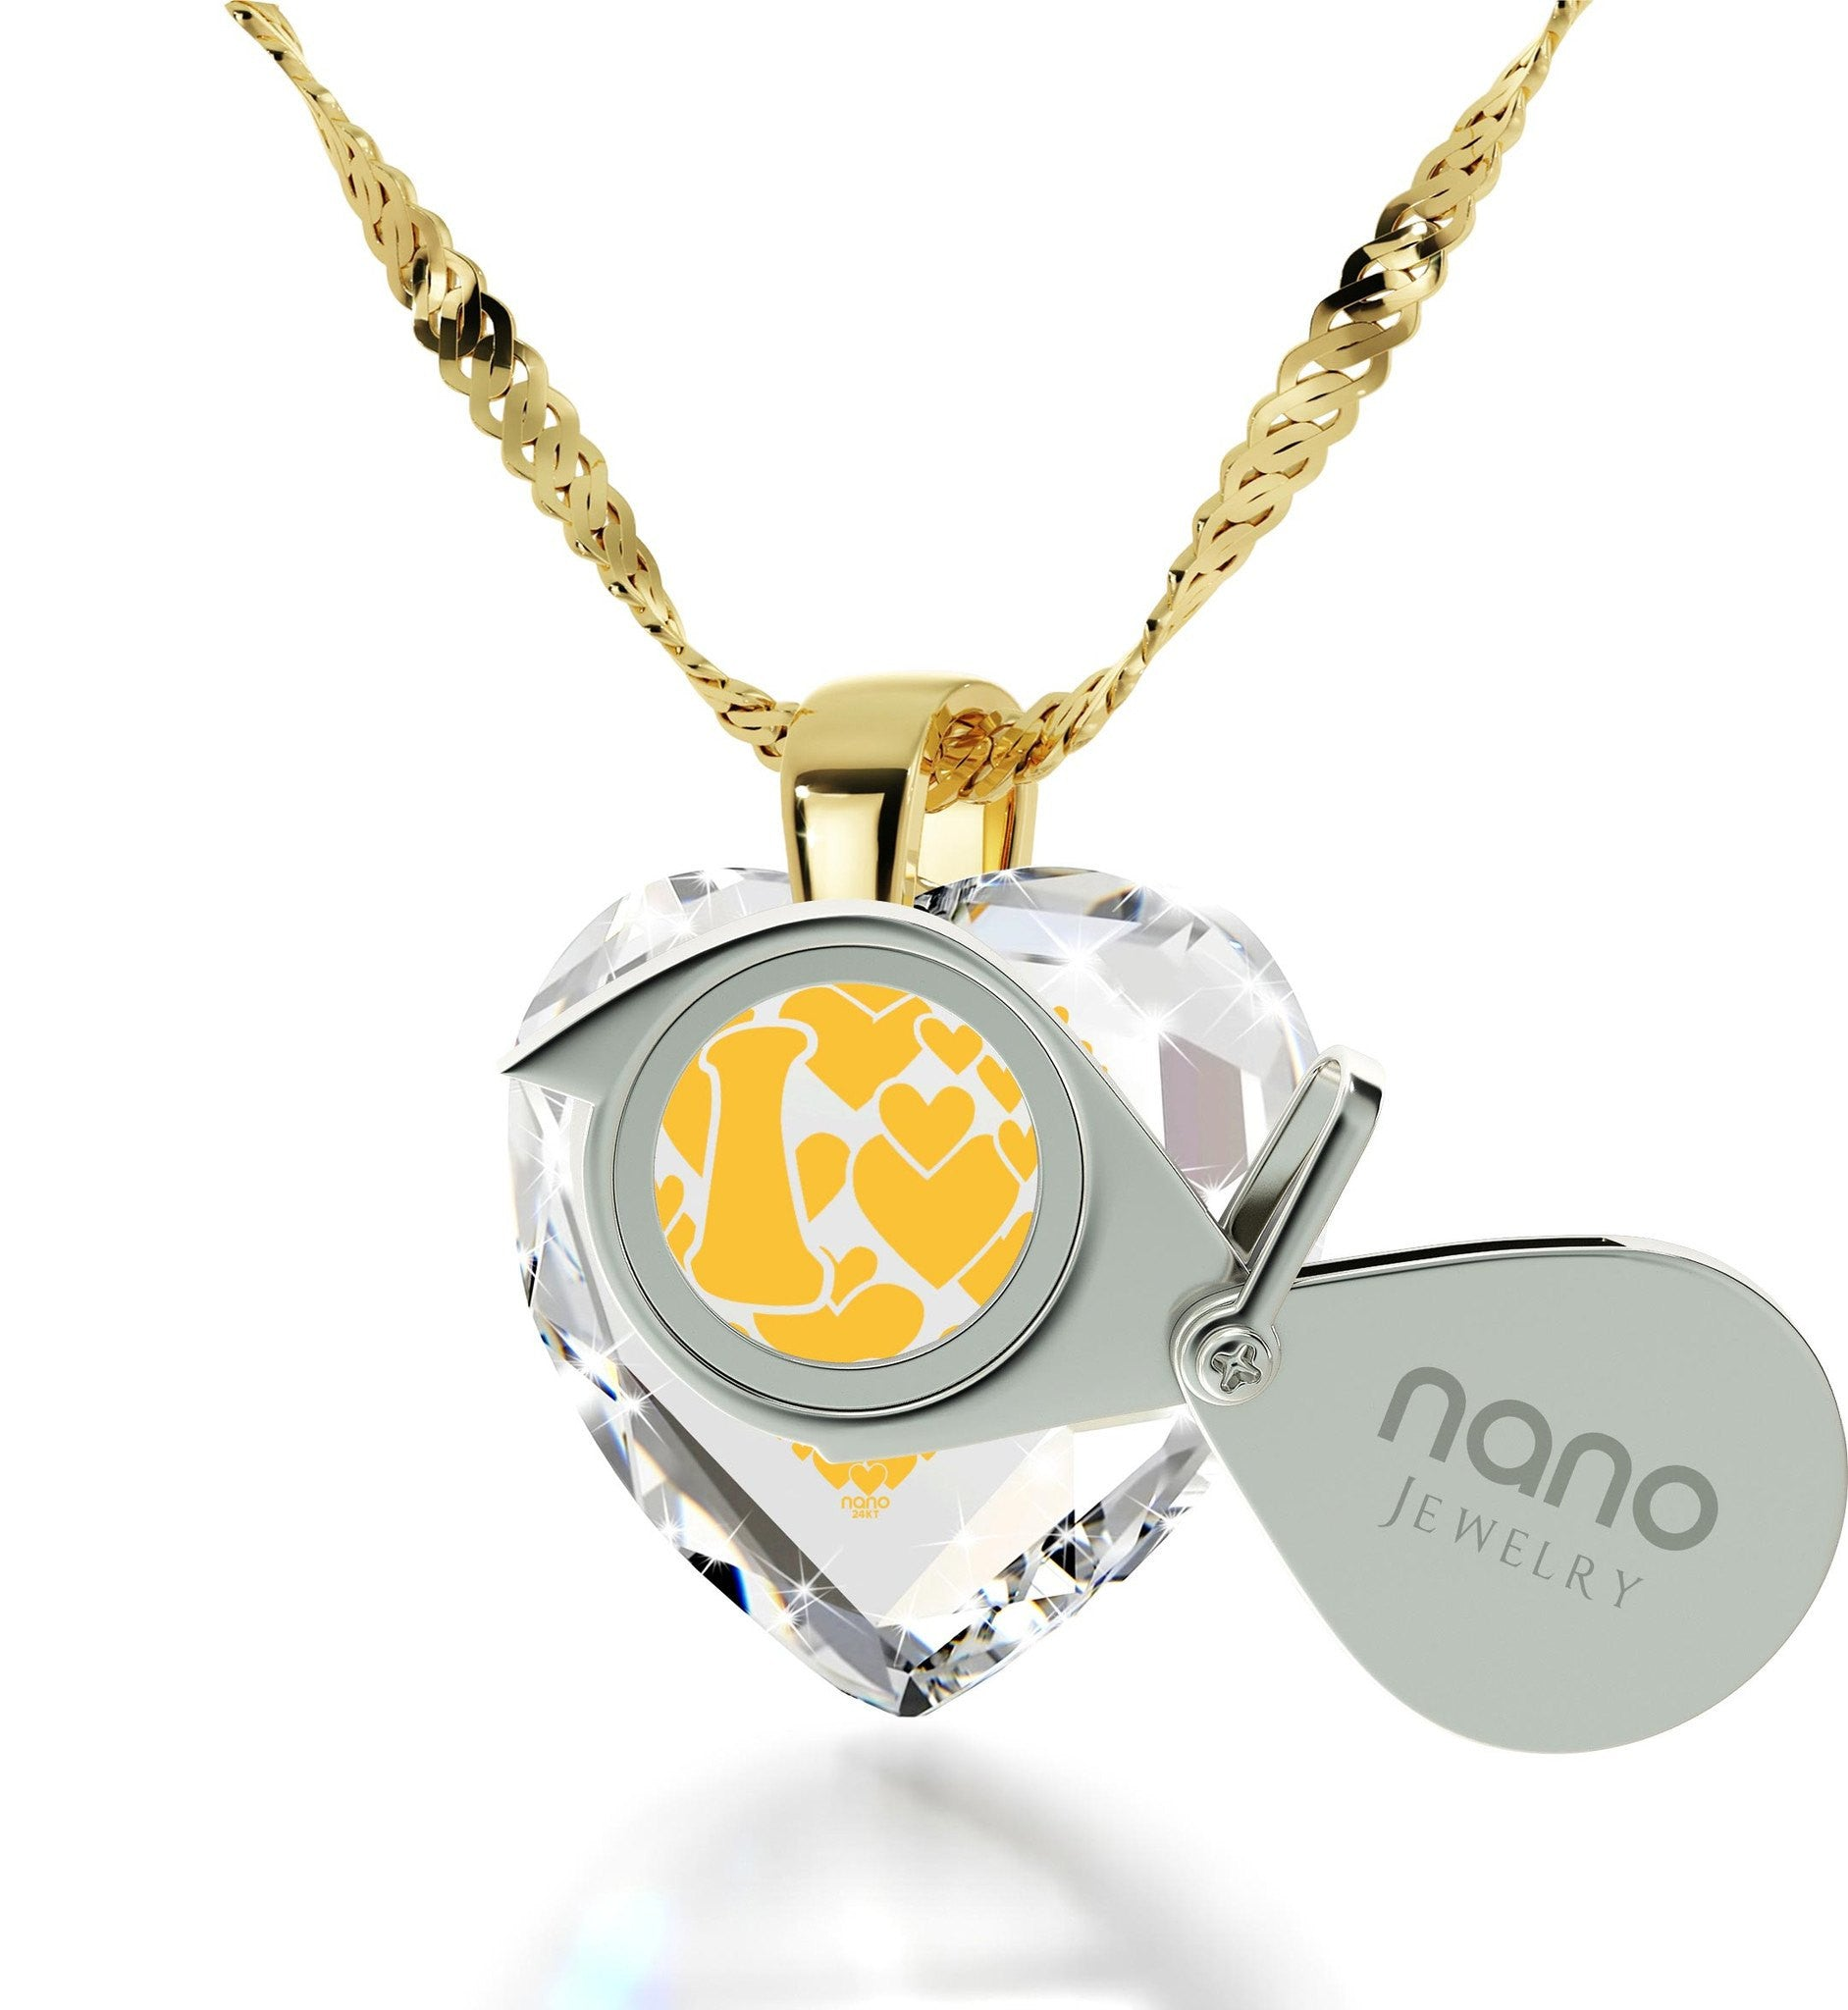 """What to Get Wife for Christmas, CZ Stone, 24k Imprint, Great Gifts for Girlfriend, Nano Jewelry"""